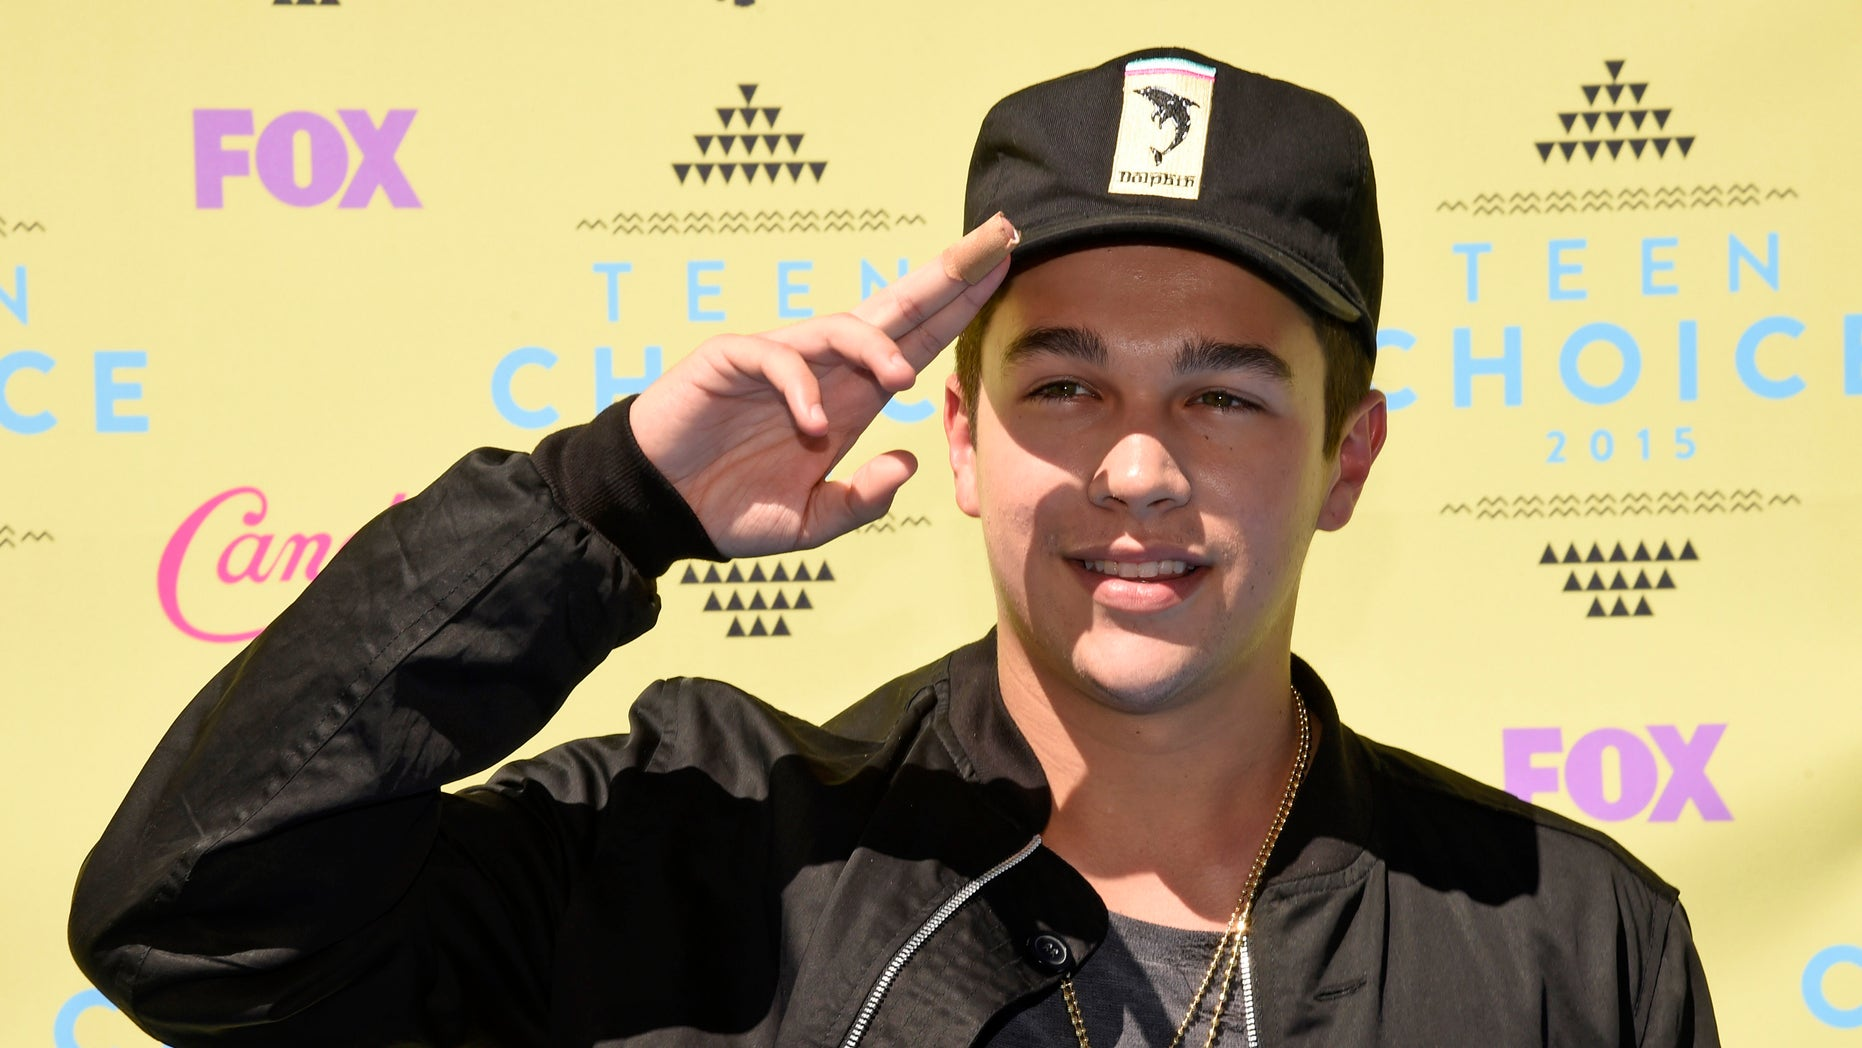 Austin Mahone arrives at the Teen Choice Awards at the Galen Center on Sunday, Aug. 16, 2015, in Los Angeles. (Photo by Chris Pizzello/Invision/AP)